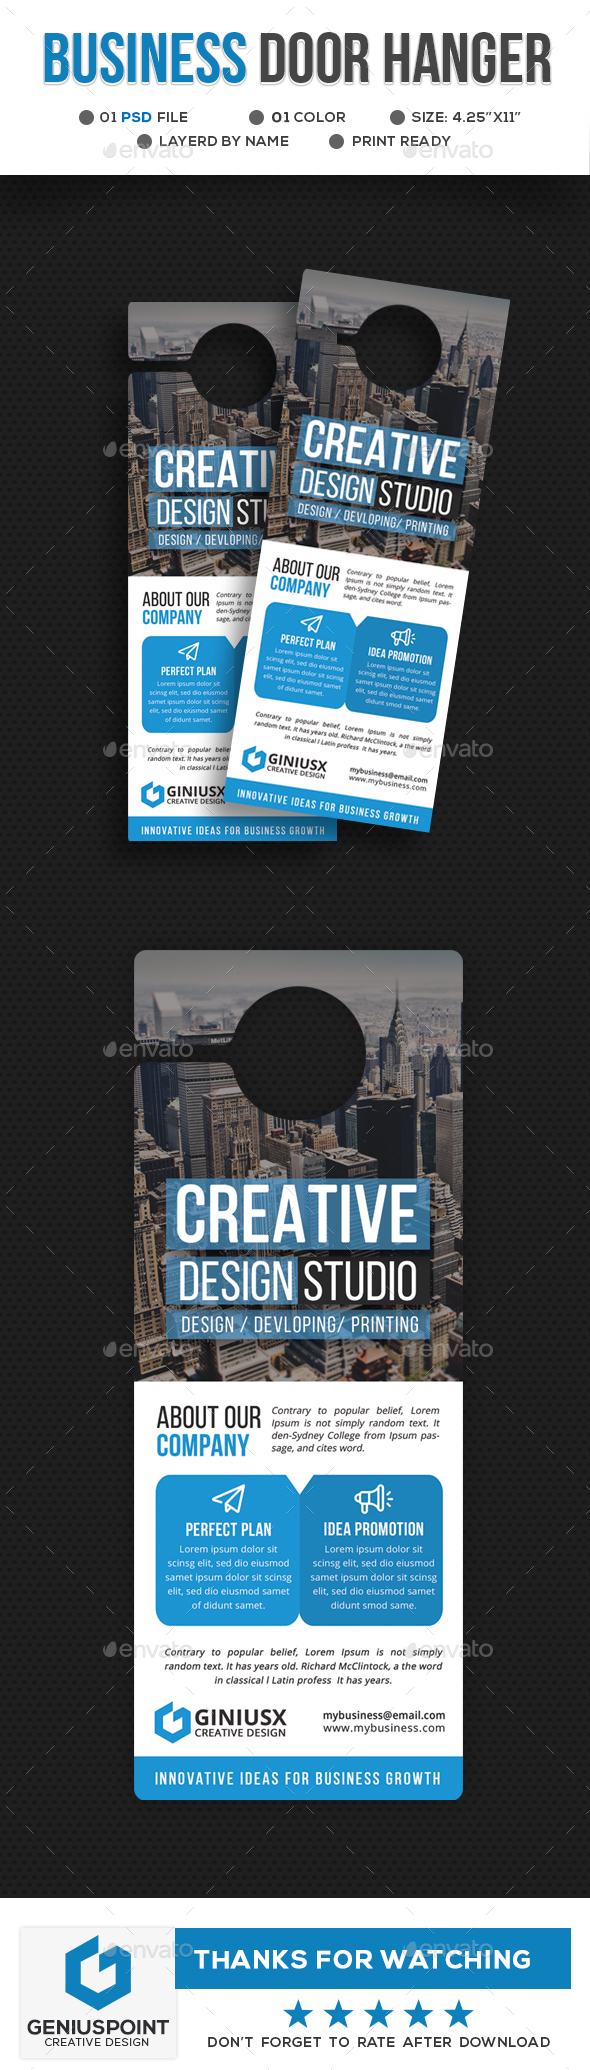 GraphicRiver Corporate Door Hanger Template 21197426